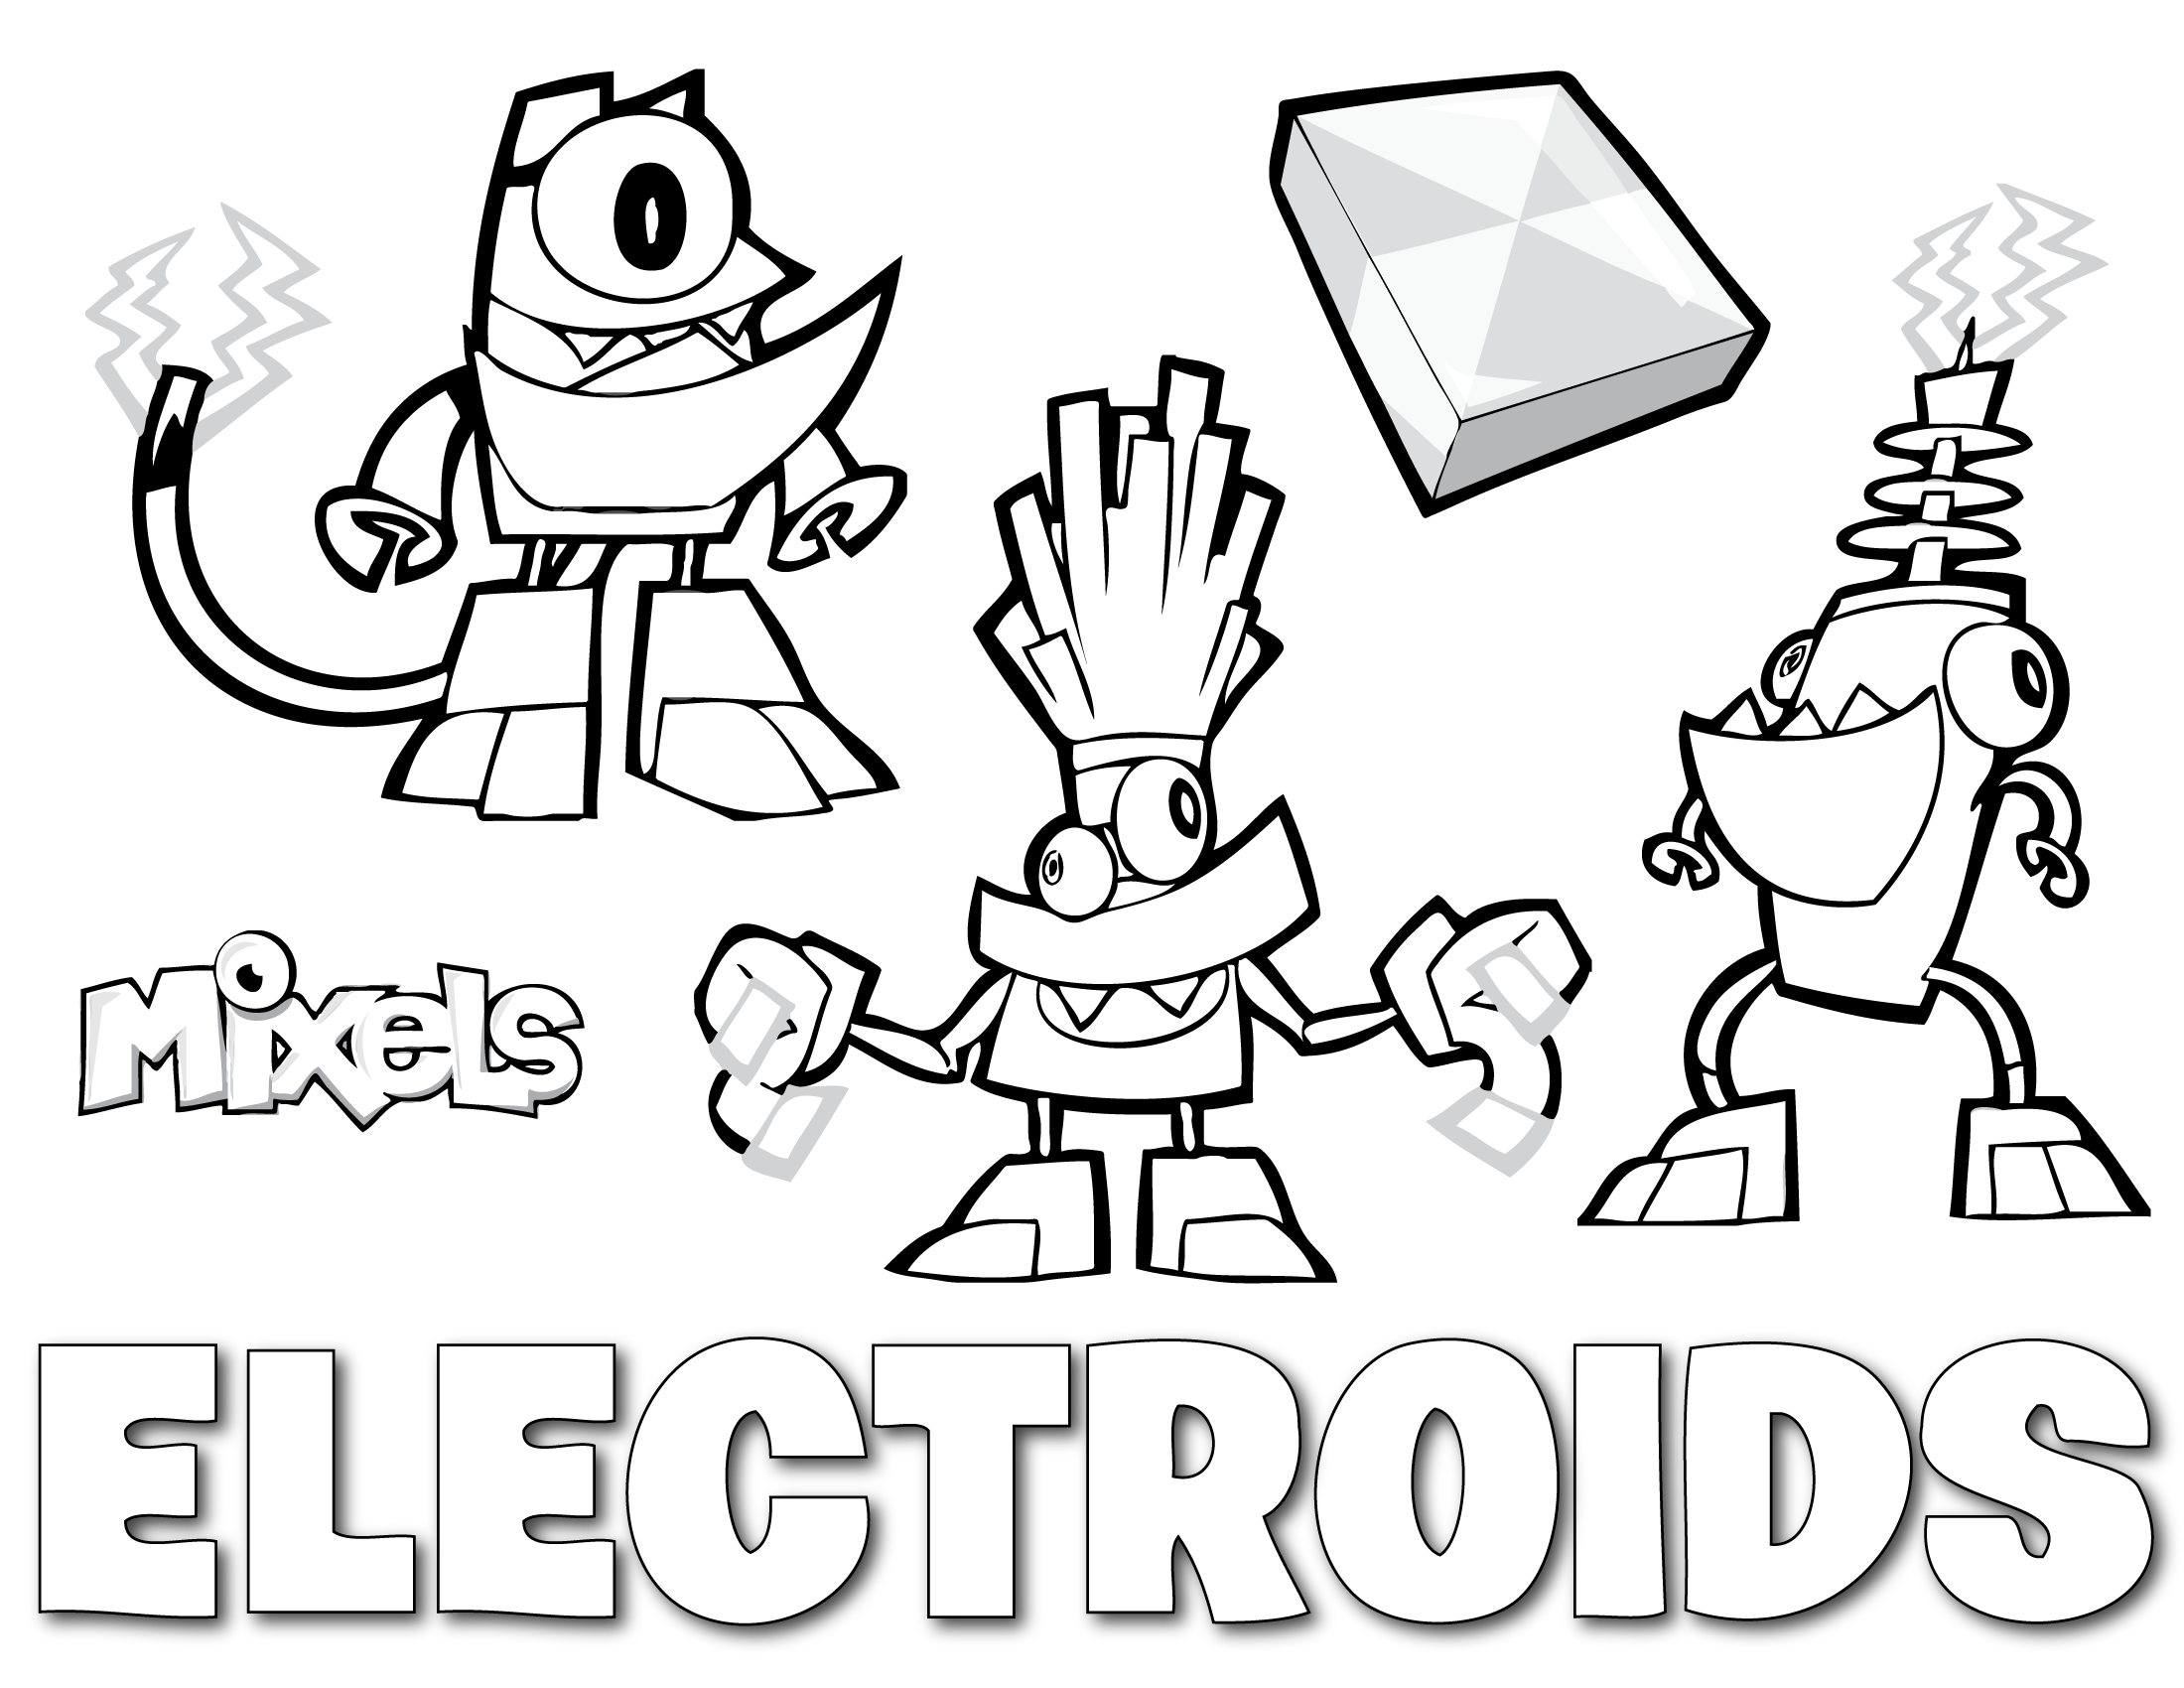 Mixels Coloring Page Electroids Erics Activity Pages